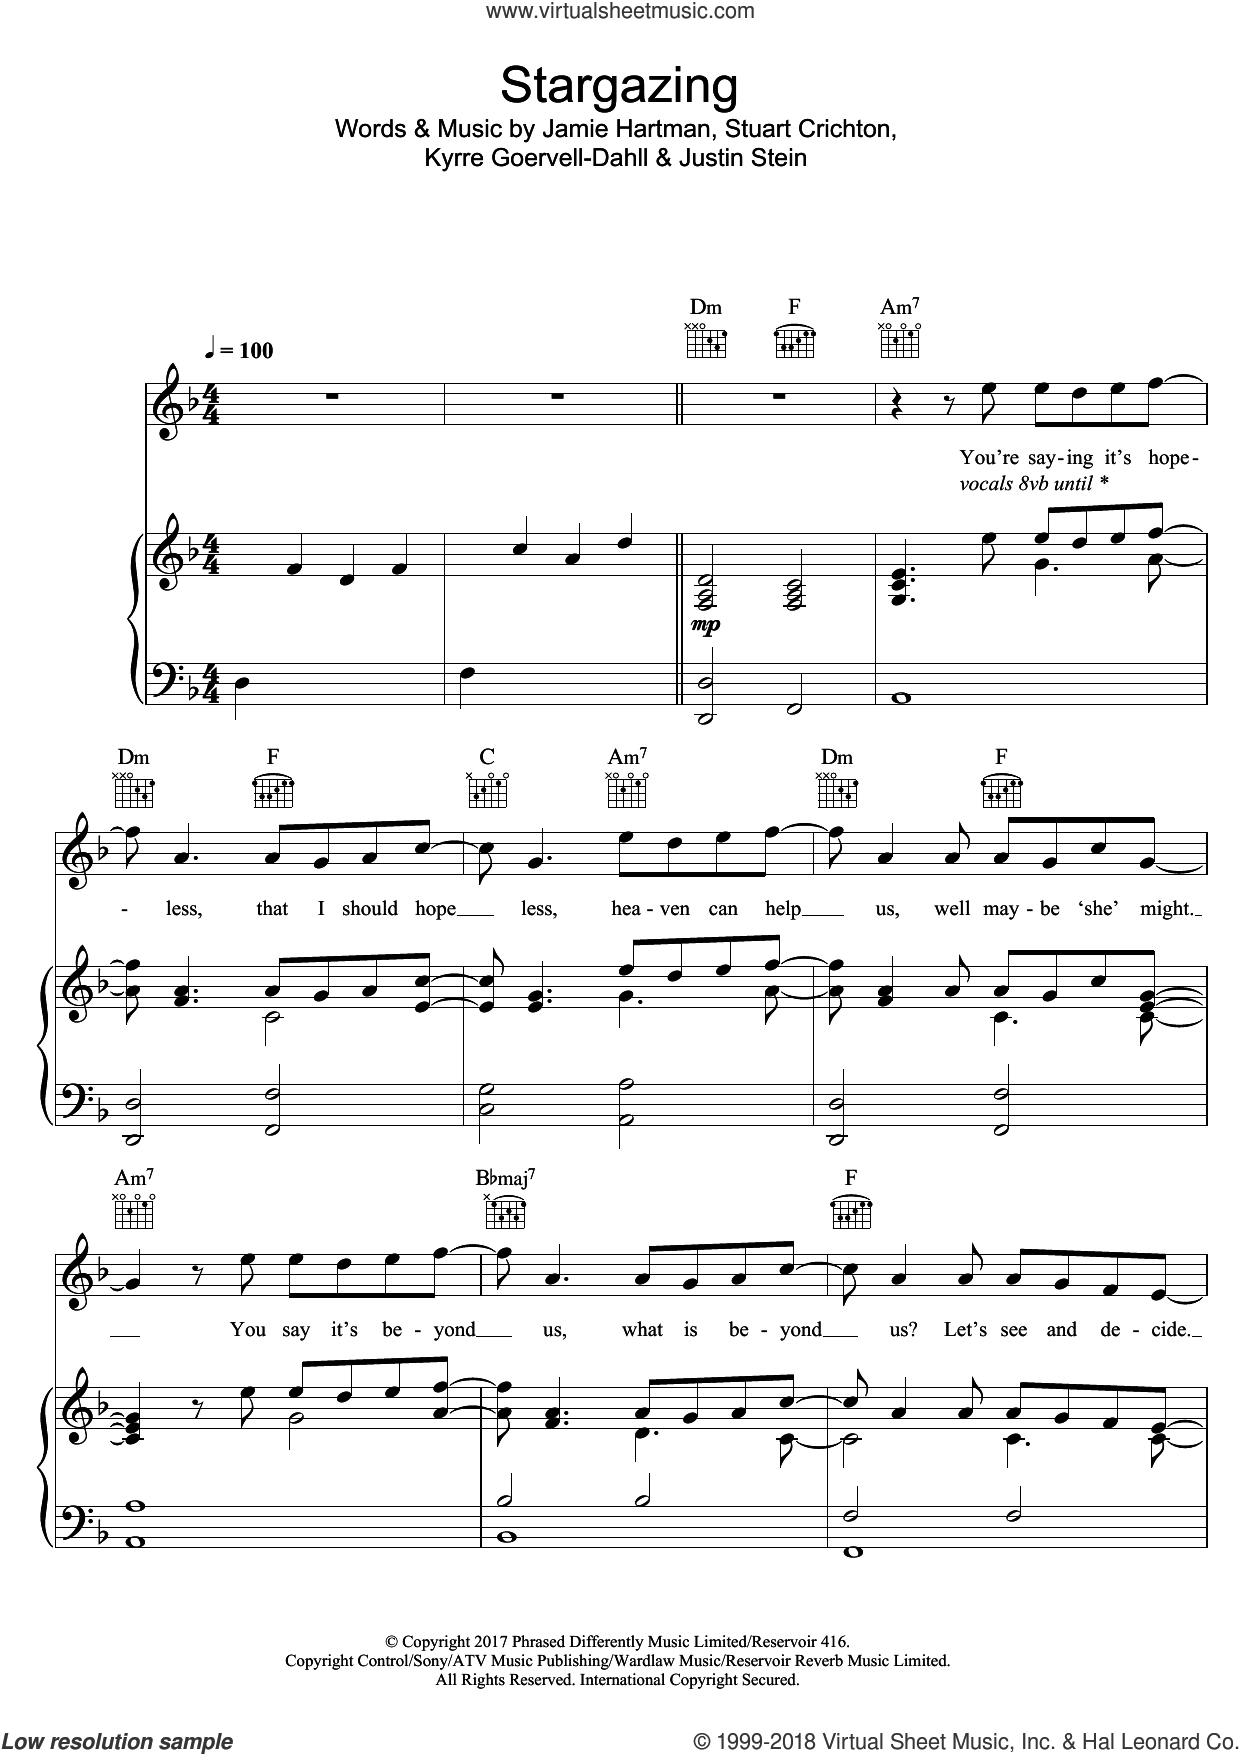 Stargazing (featuring Justin Jesso) sheet music for voice, piano or guitar by Kygo, Justin Jesso, Jamie Hartman, Justin Stein, Kyrre Goervell-Dahll and Stuart Crichton, intermediate skill level